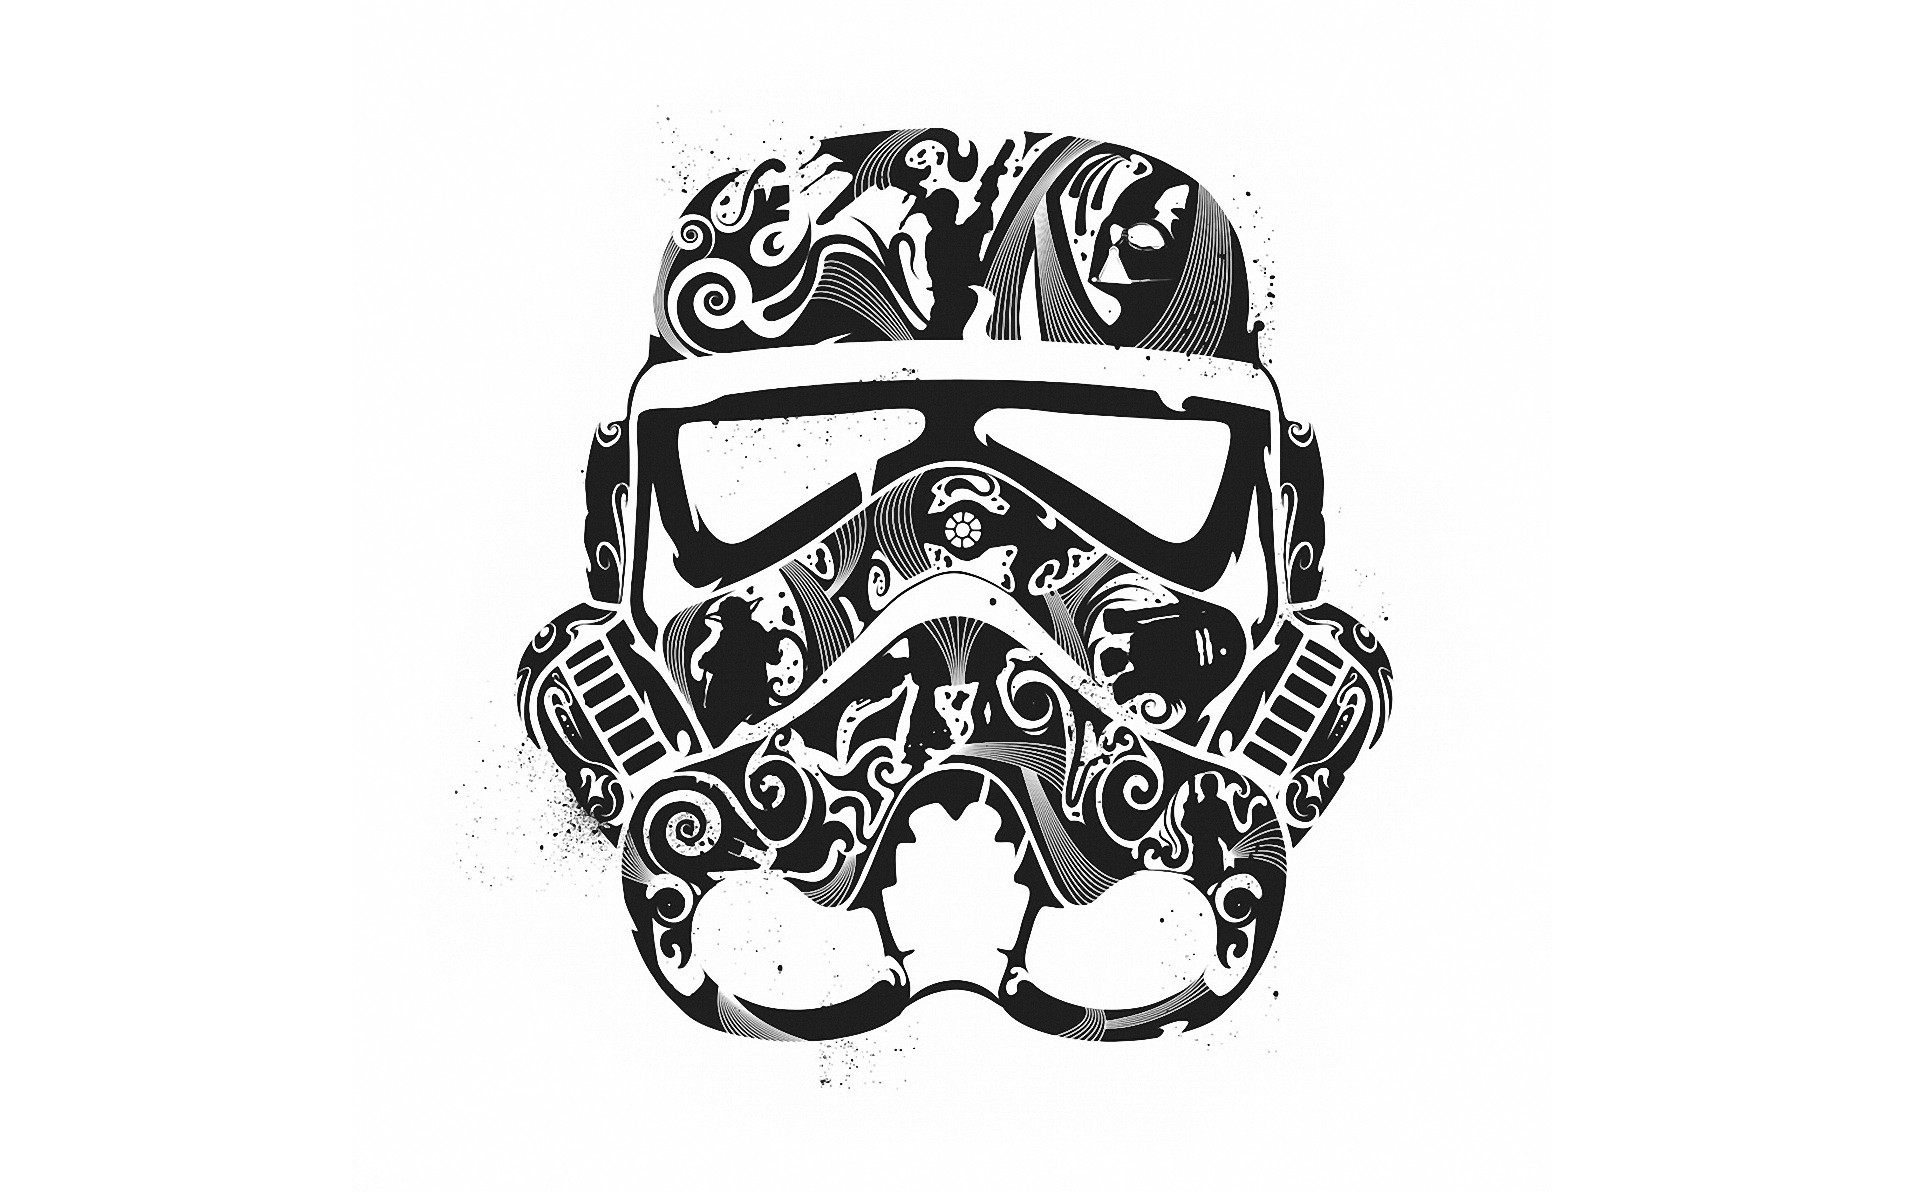 Must see Wallpaper Black And White Star Wars - 713e0e84841a5b9afff422d349eb37ef  Collection_129112.jpg